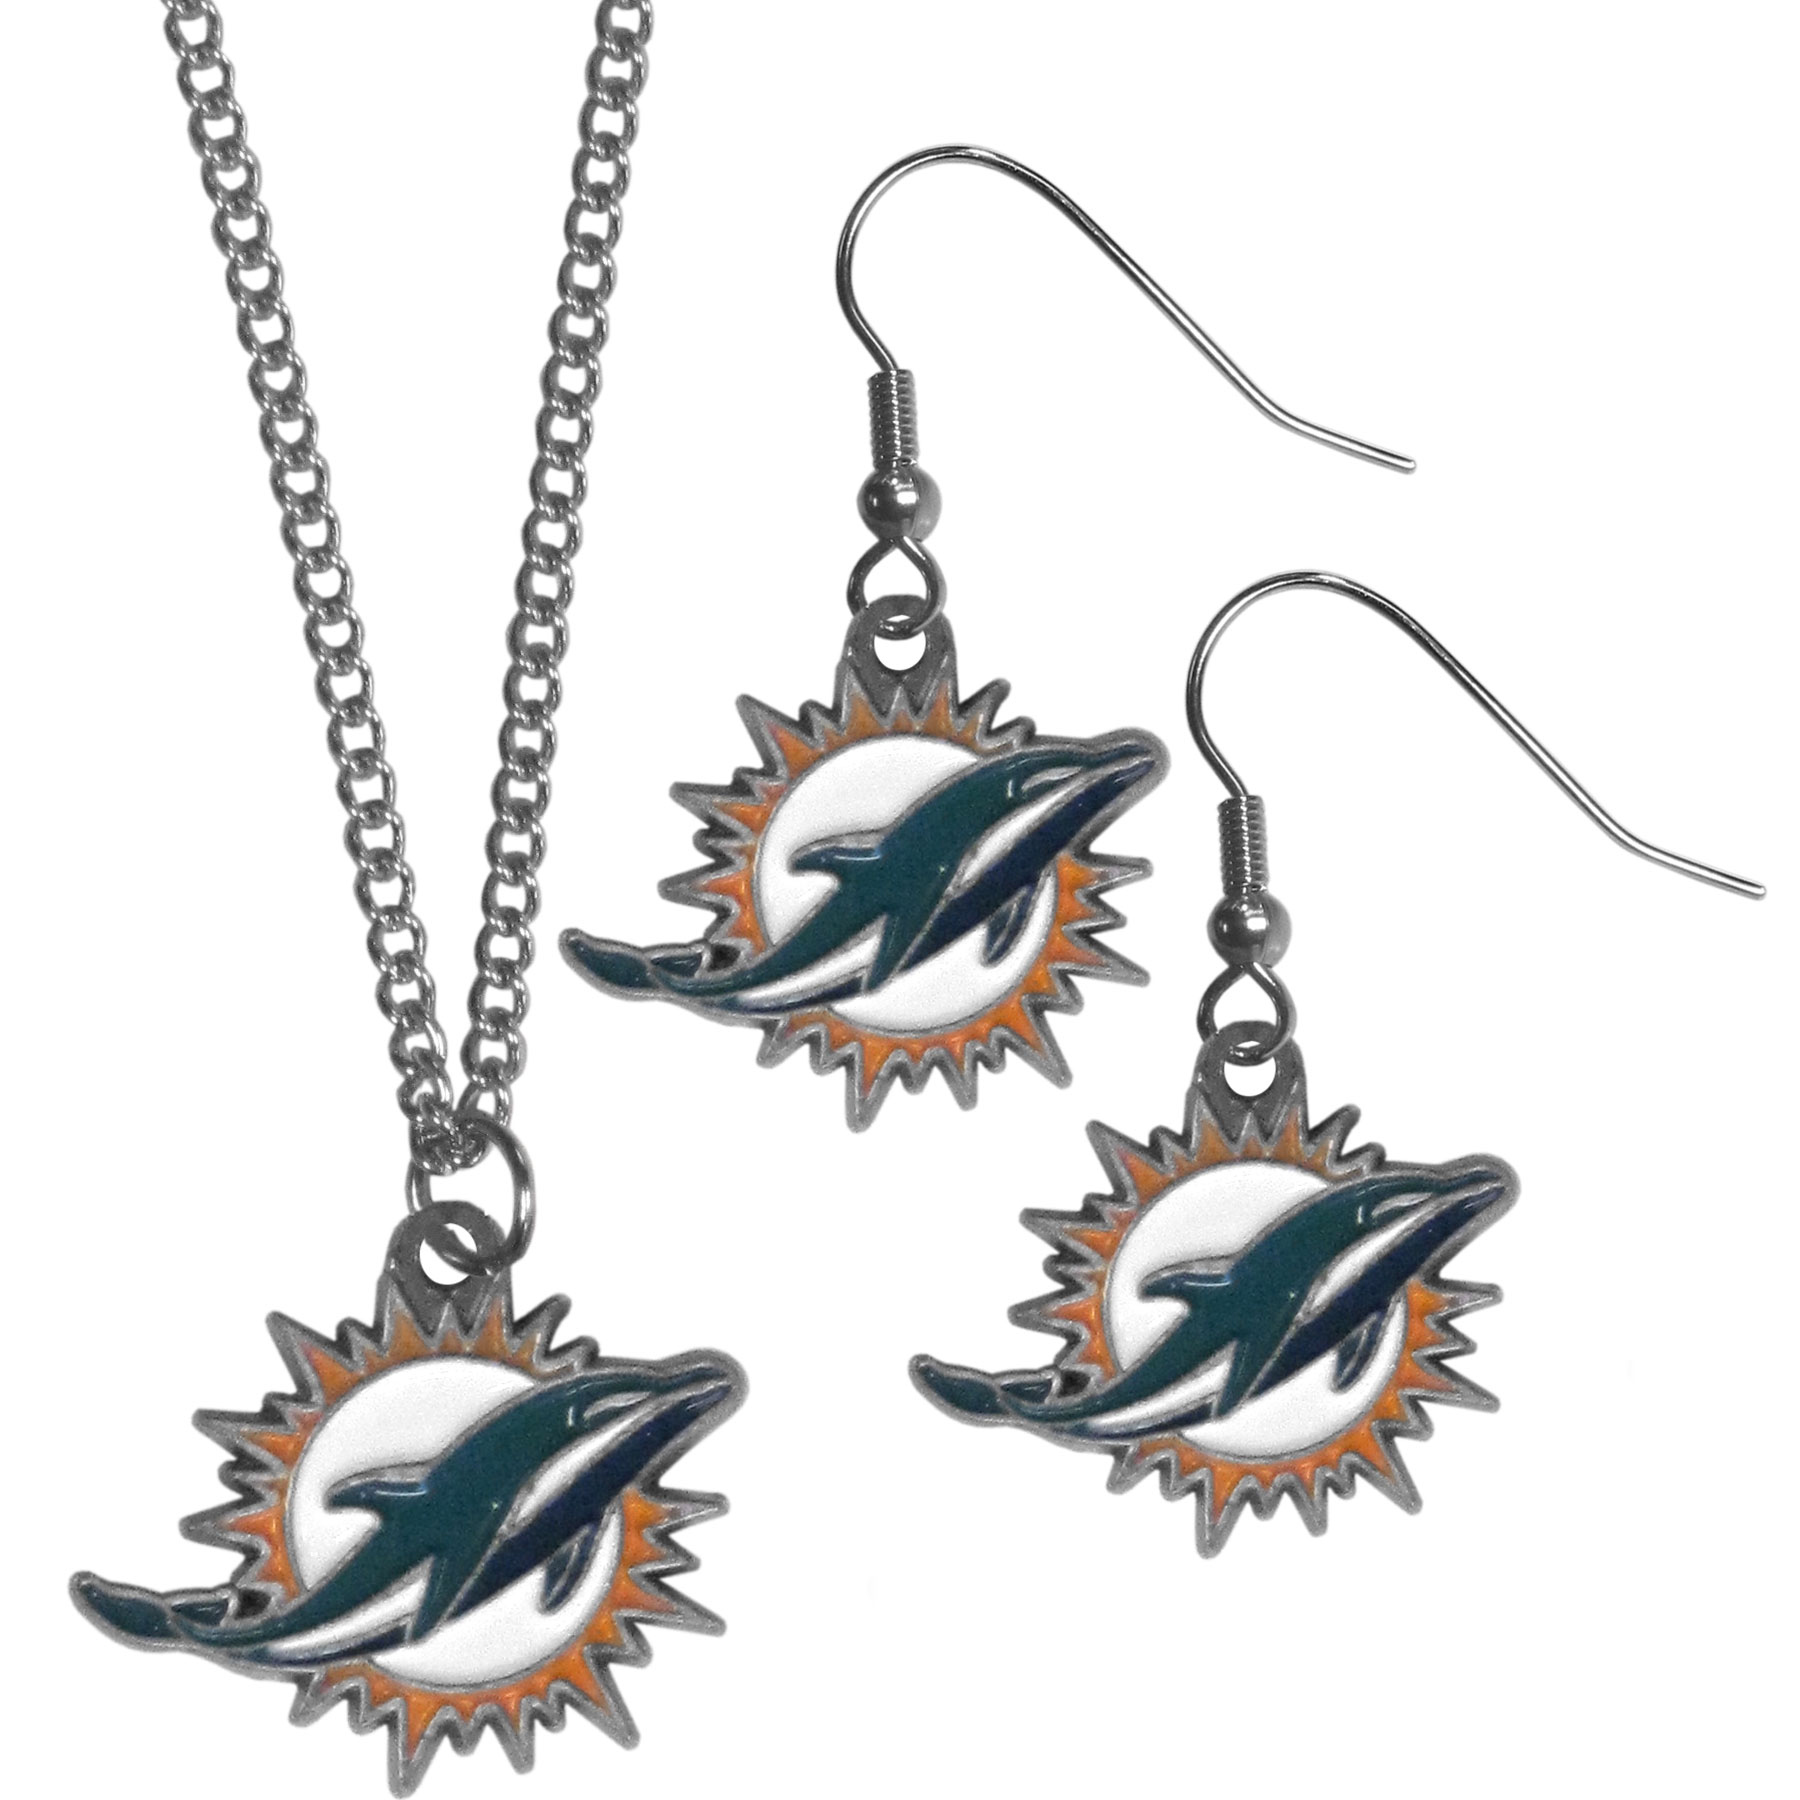 Miami Dolphins Dangle Earrings and Chain Necklace Set - This classic jewelry set contains are most popular Miami Dolphins dangle earrings and 22 inch chain necklace. The trendy, dangle earrings are lightweight and feature a fully cast metal team charm with enameled team colors. The matching necklace completes this fashion forward combo and is a spirited set that is perfect for game day but nice enough for everyday.